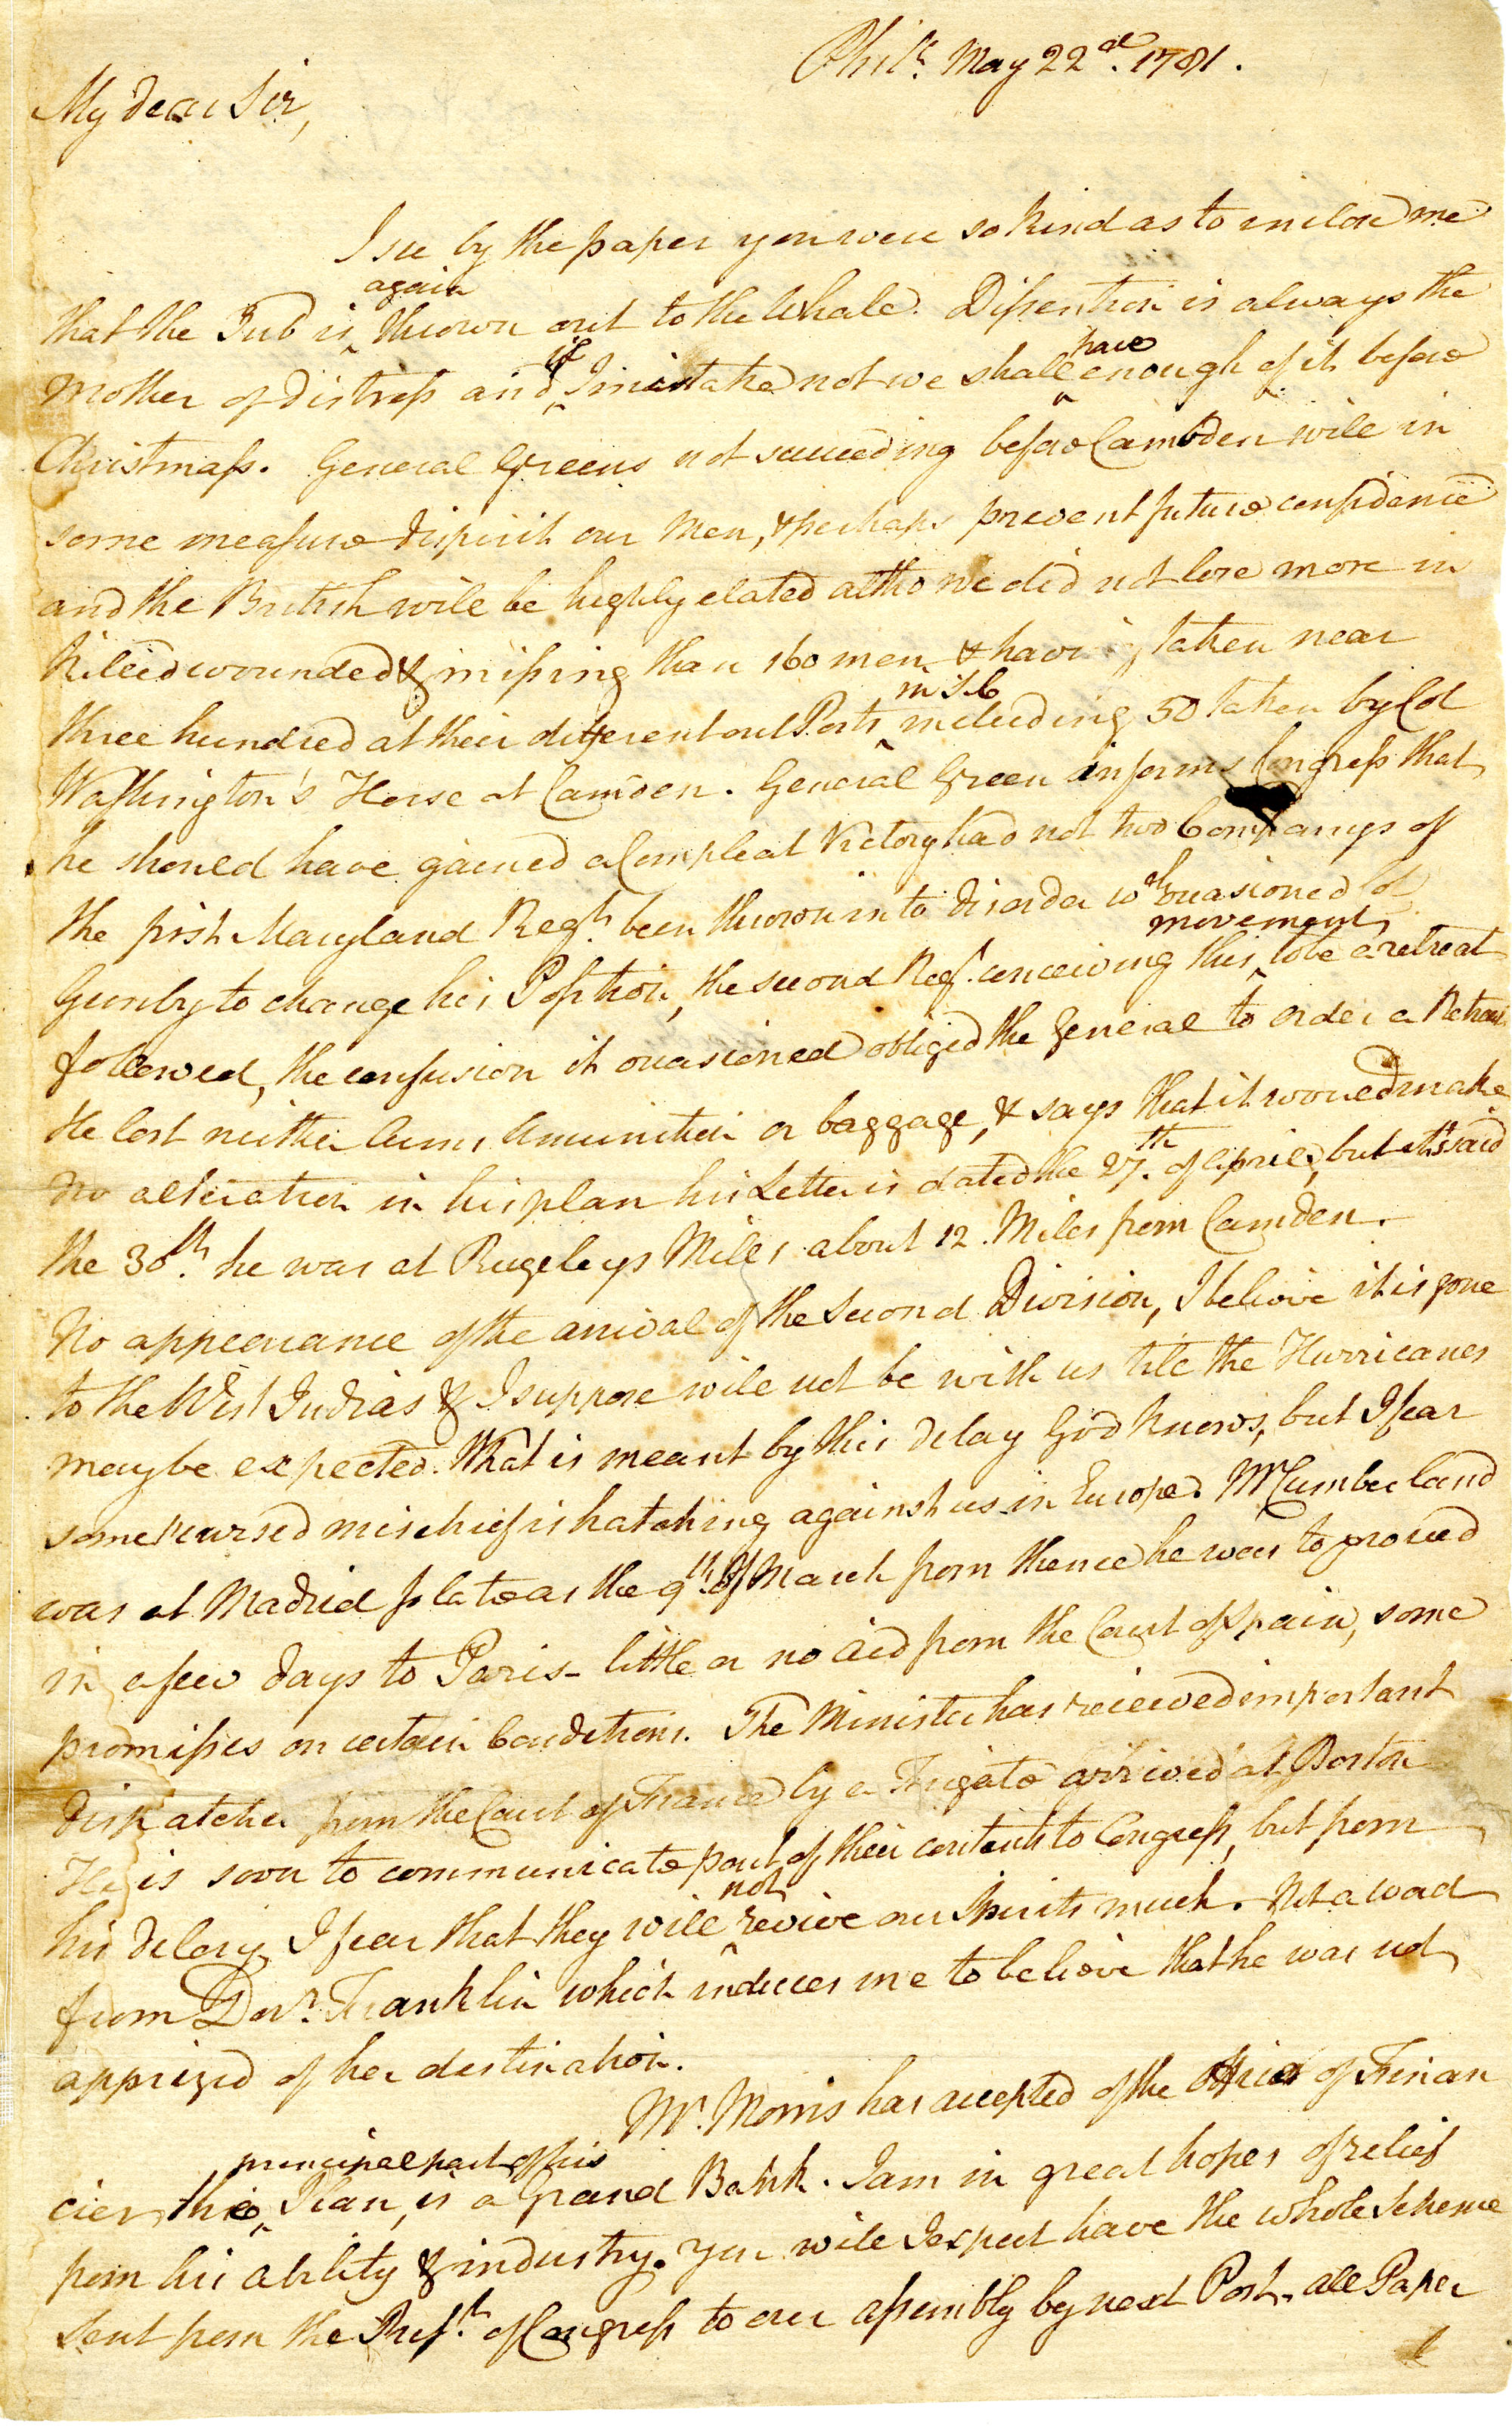 Letter from Daniel of St. Thomas Jenifer to Unknown